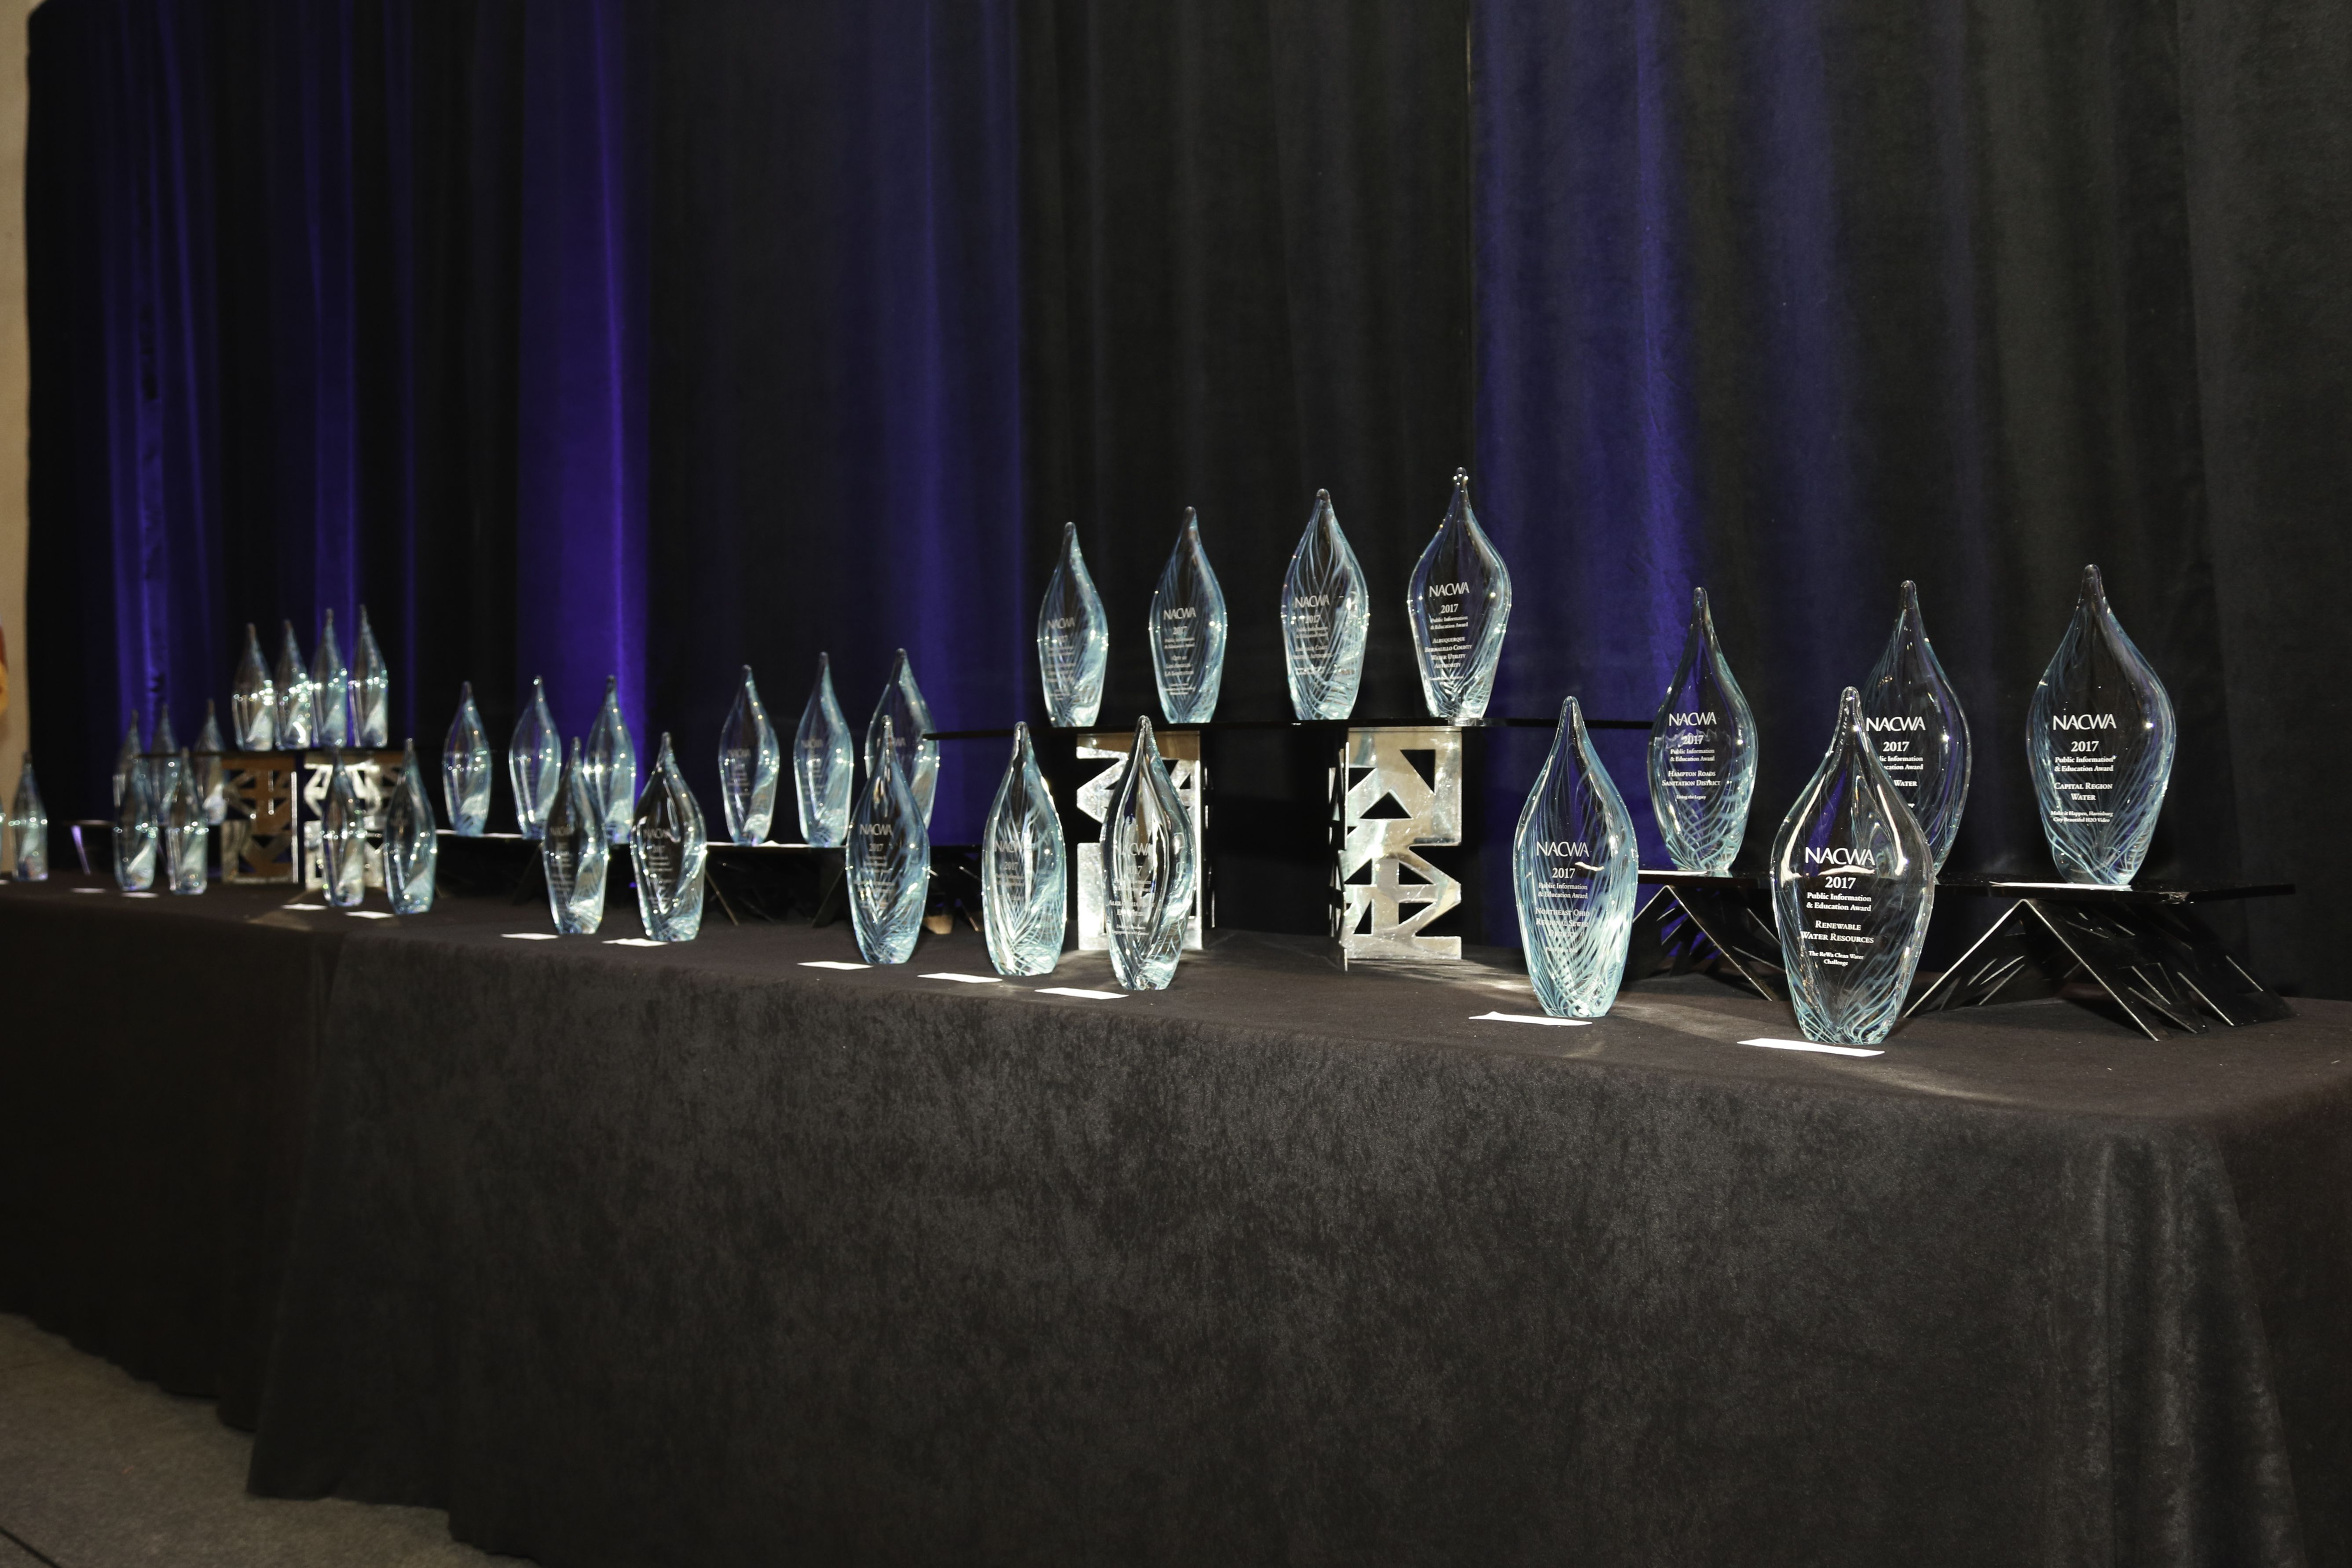 The National Environmental Achievement Awards were presented to individuals and member agencies that have made outstanding contributions to environmental protection and wastewater management.